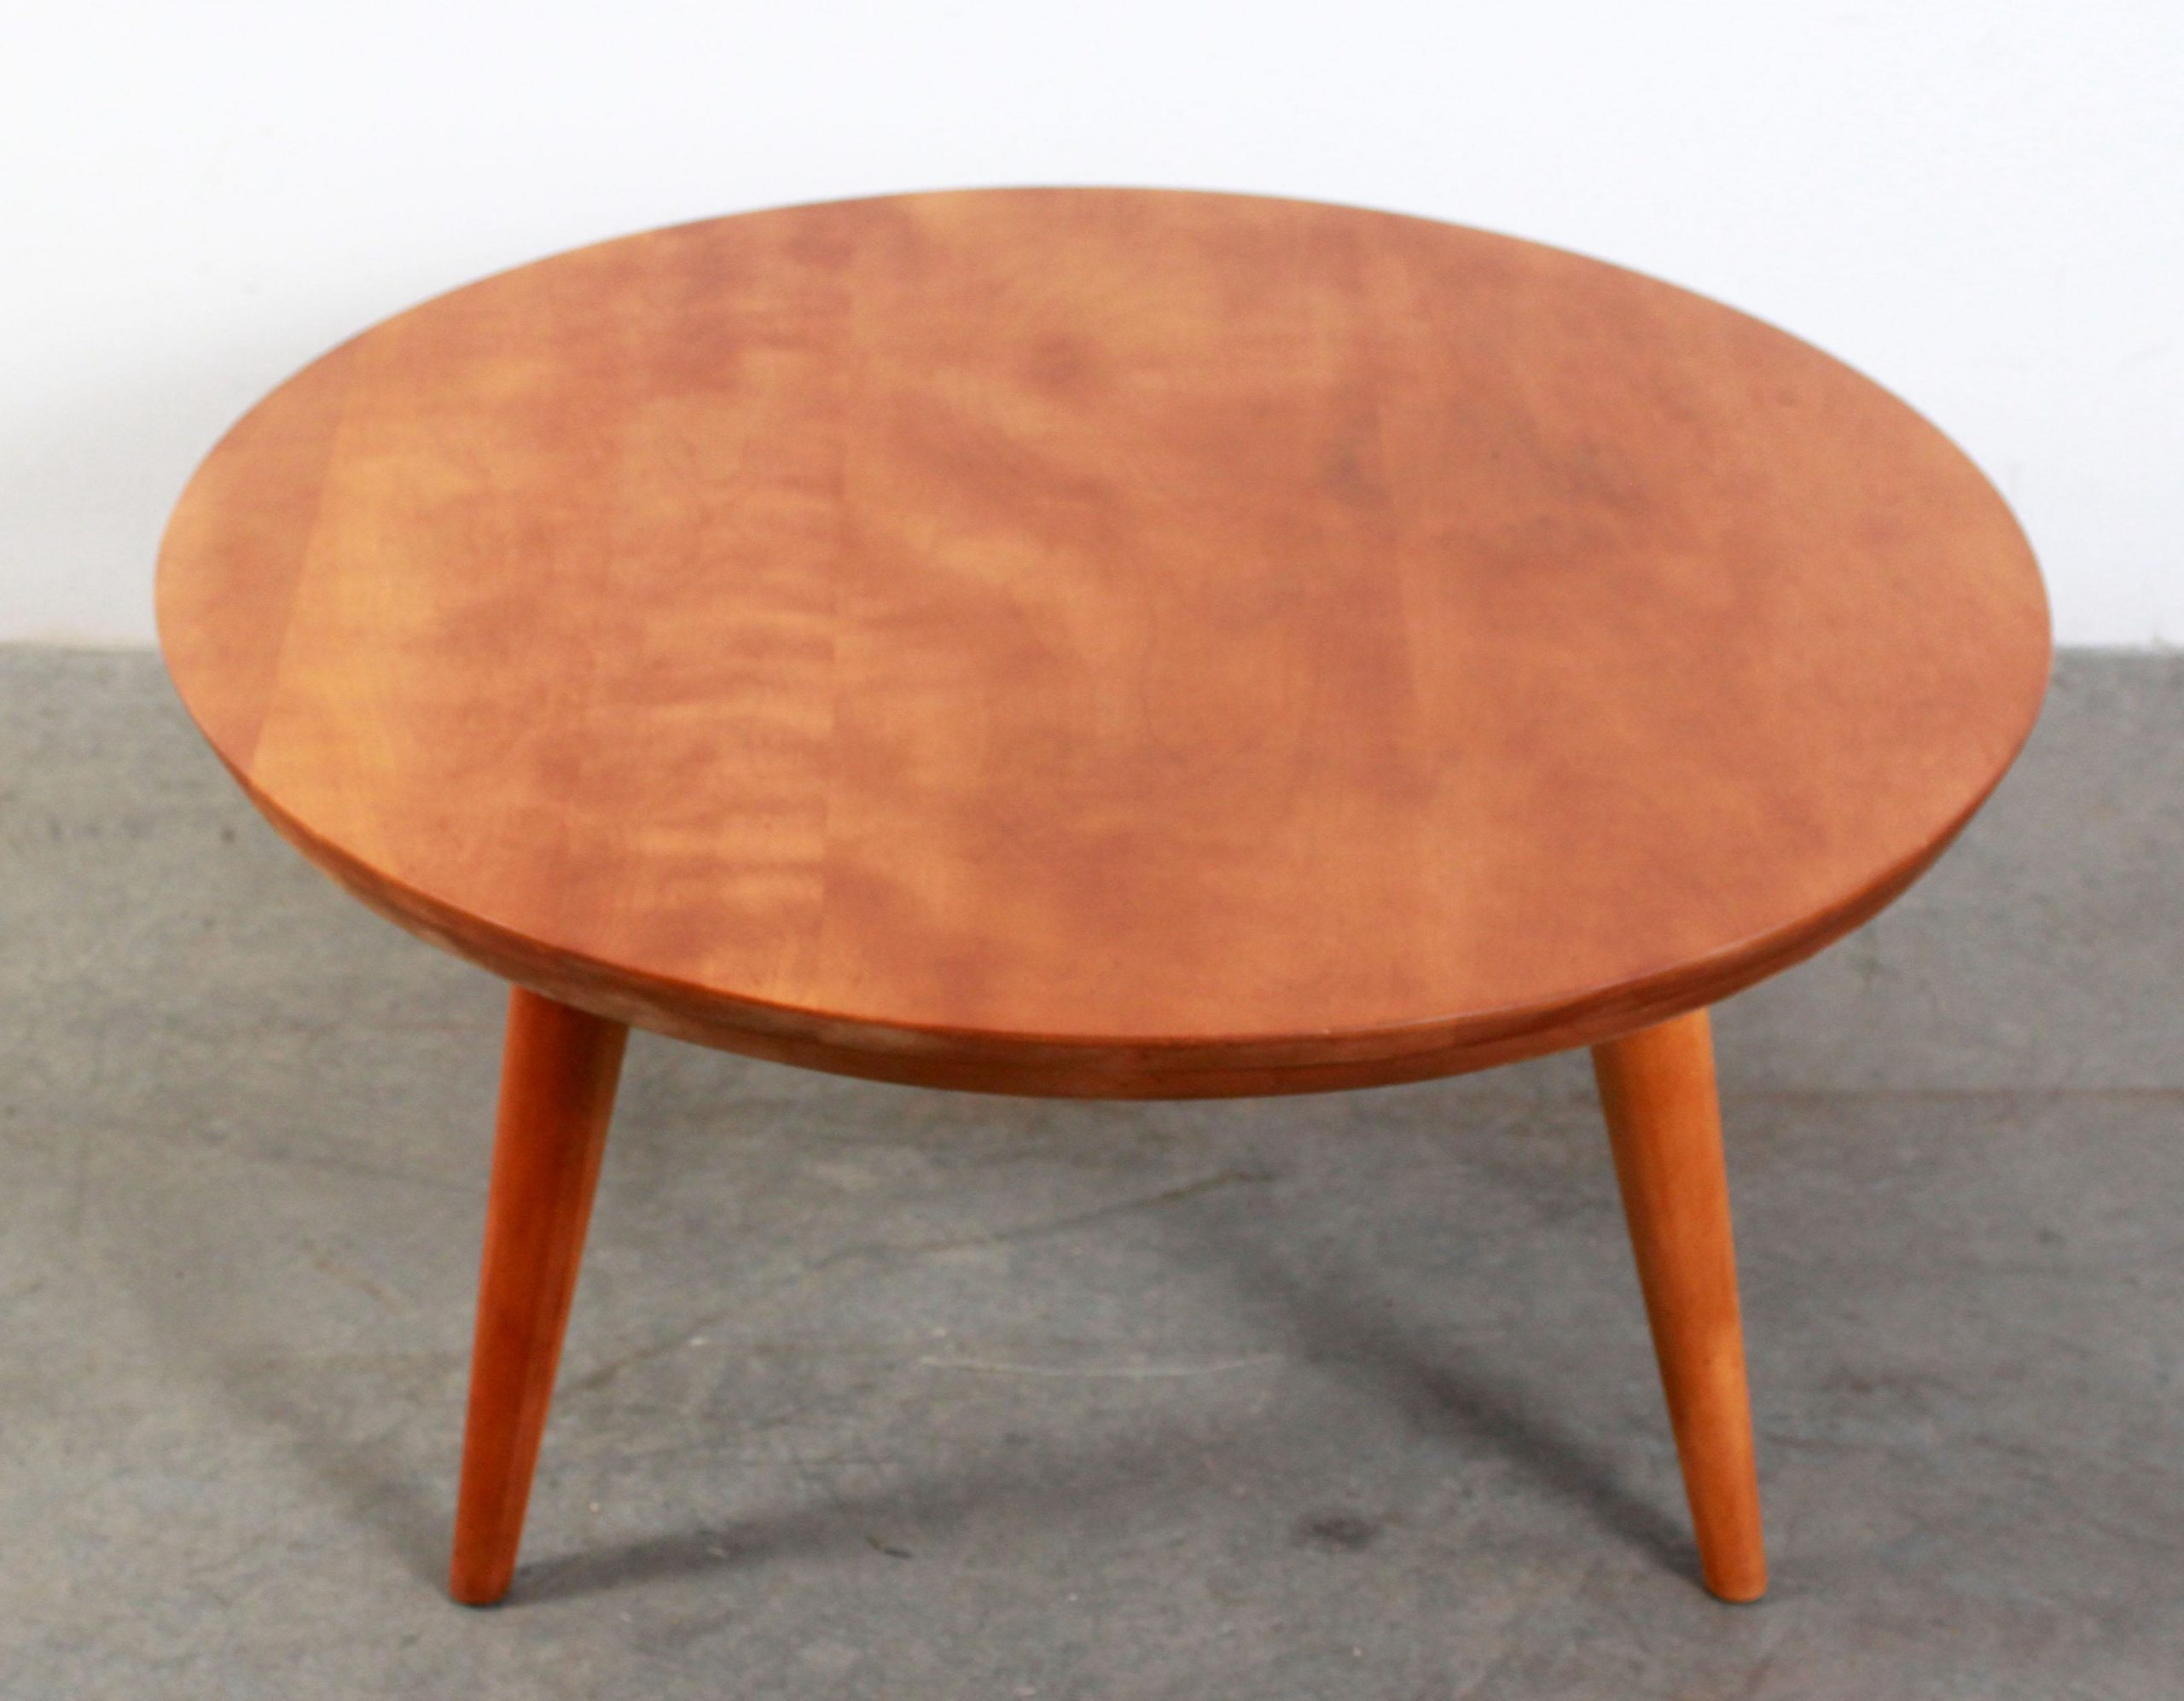 Mid Century Modern Russel Wright For Conant Ball Solid Maple Round Coffee Table Atomic Flat